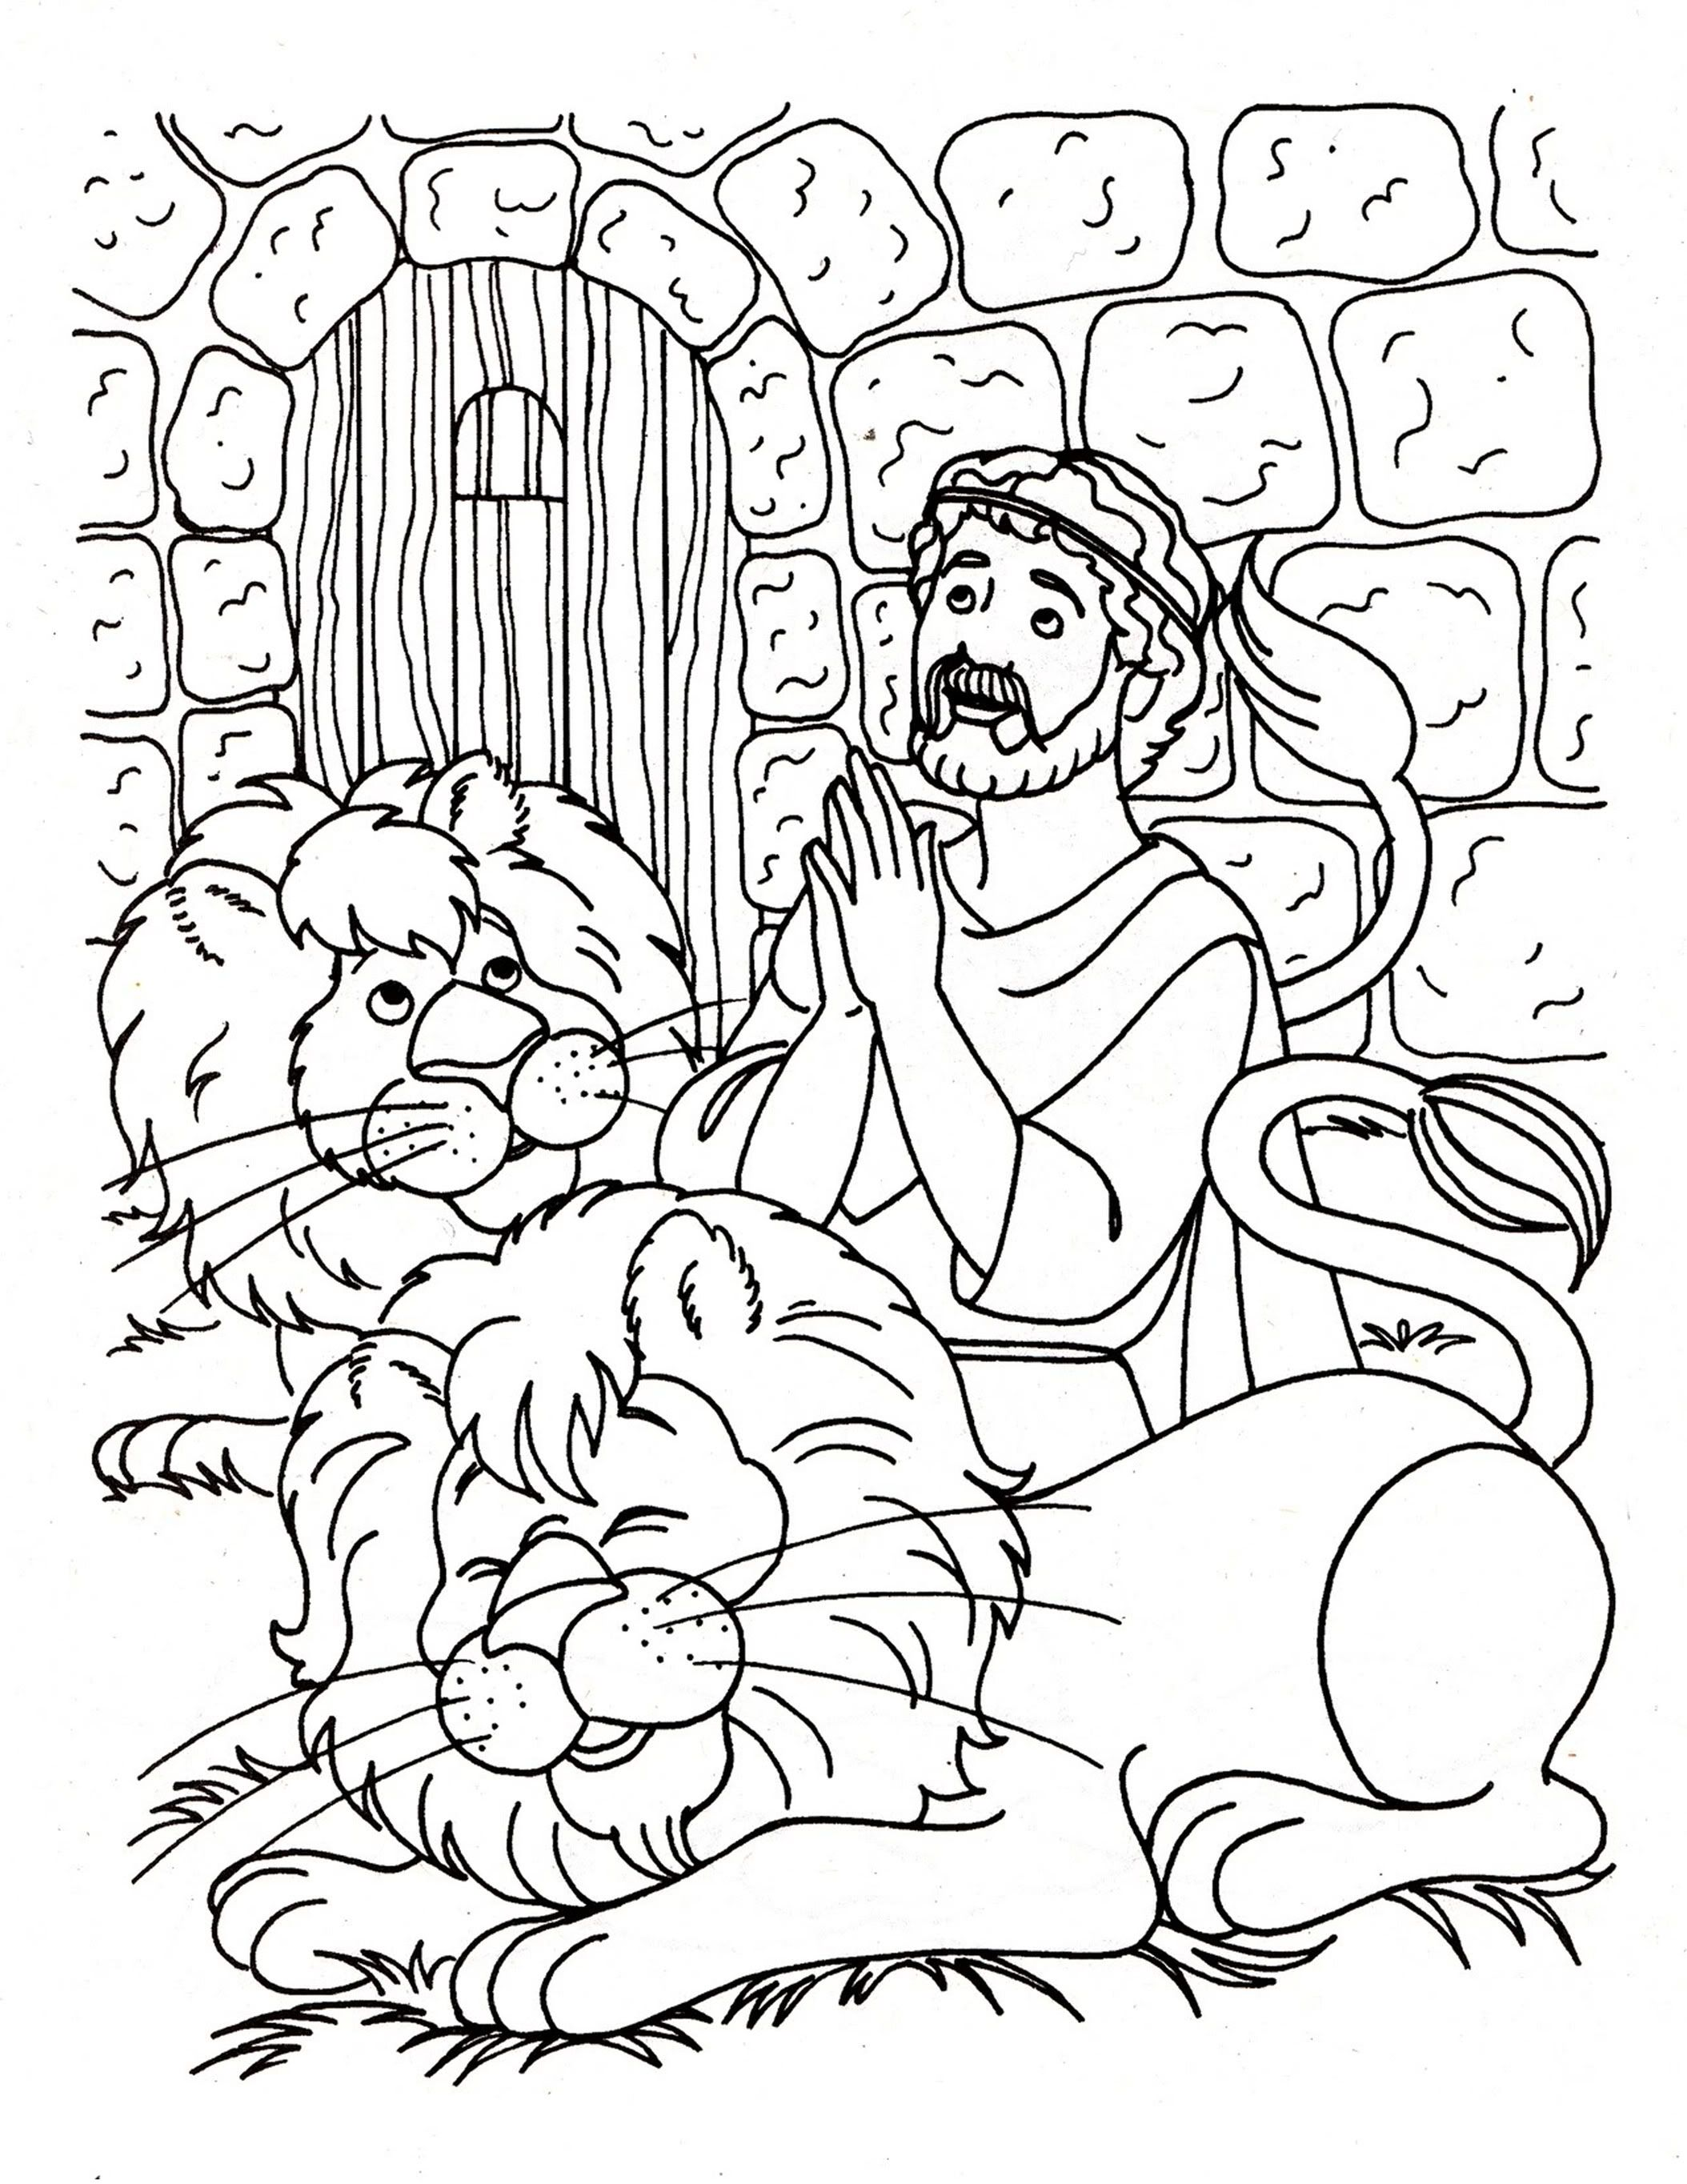 What You Ll Need Scriptures Gospel Art Kit Picture 117 Coloring Page And Coloring Supplies Of You Daniel And The Lions Bible Coloring Pages Bible Coloring